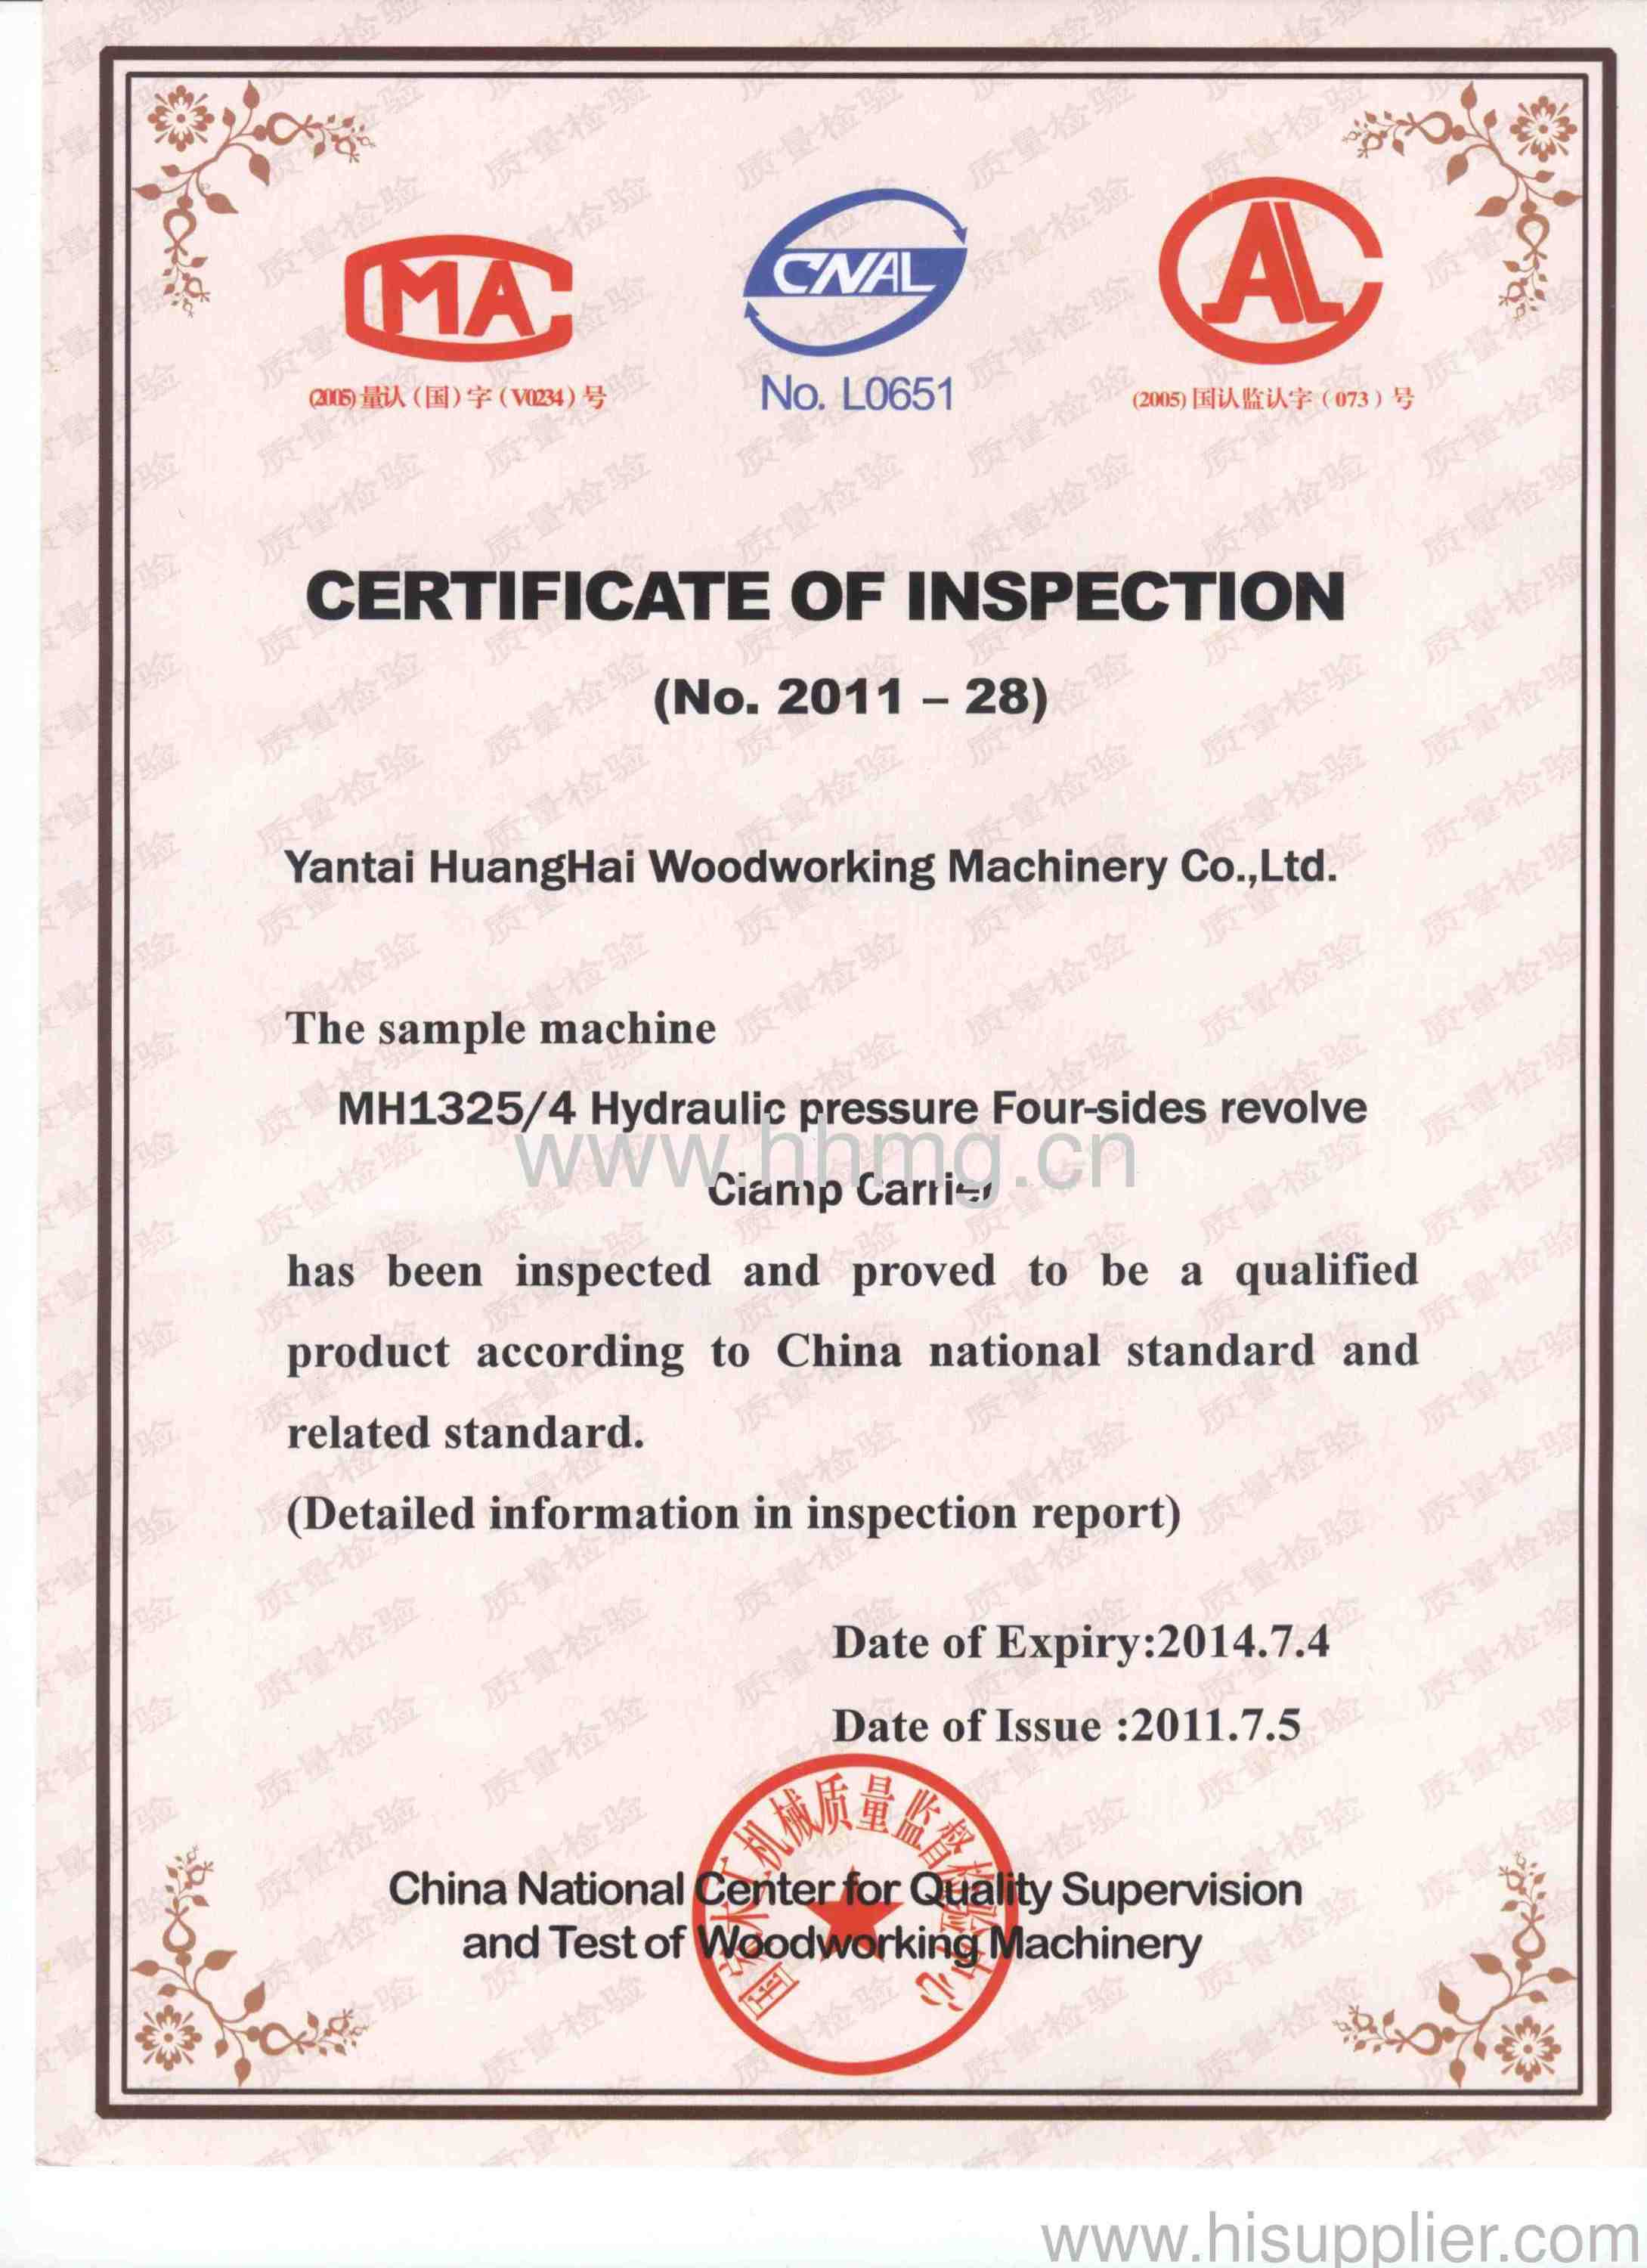 CERTIFICATE INSPECTION - HUANGHAI WOODWORKING MACHINERY CO.,LTD